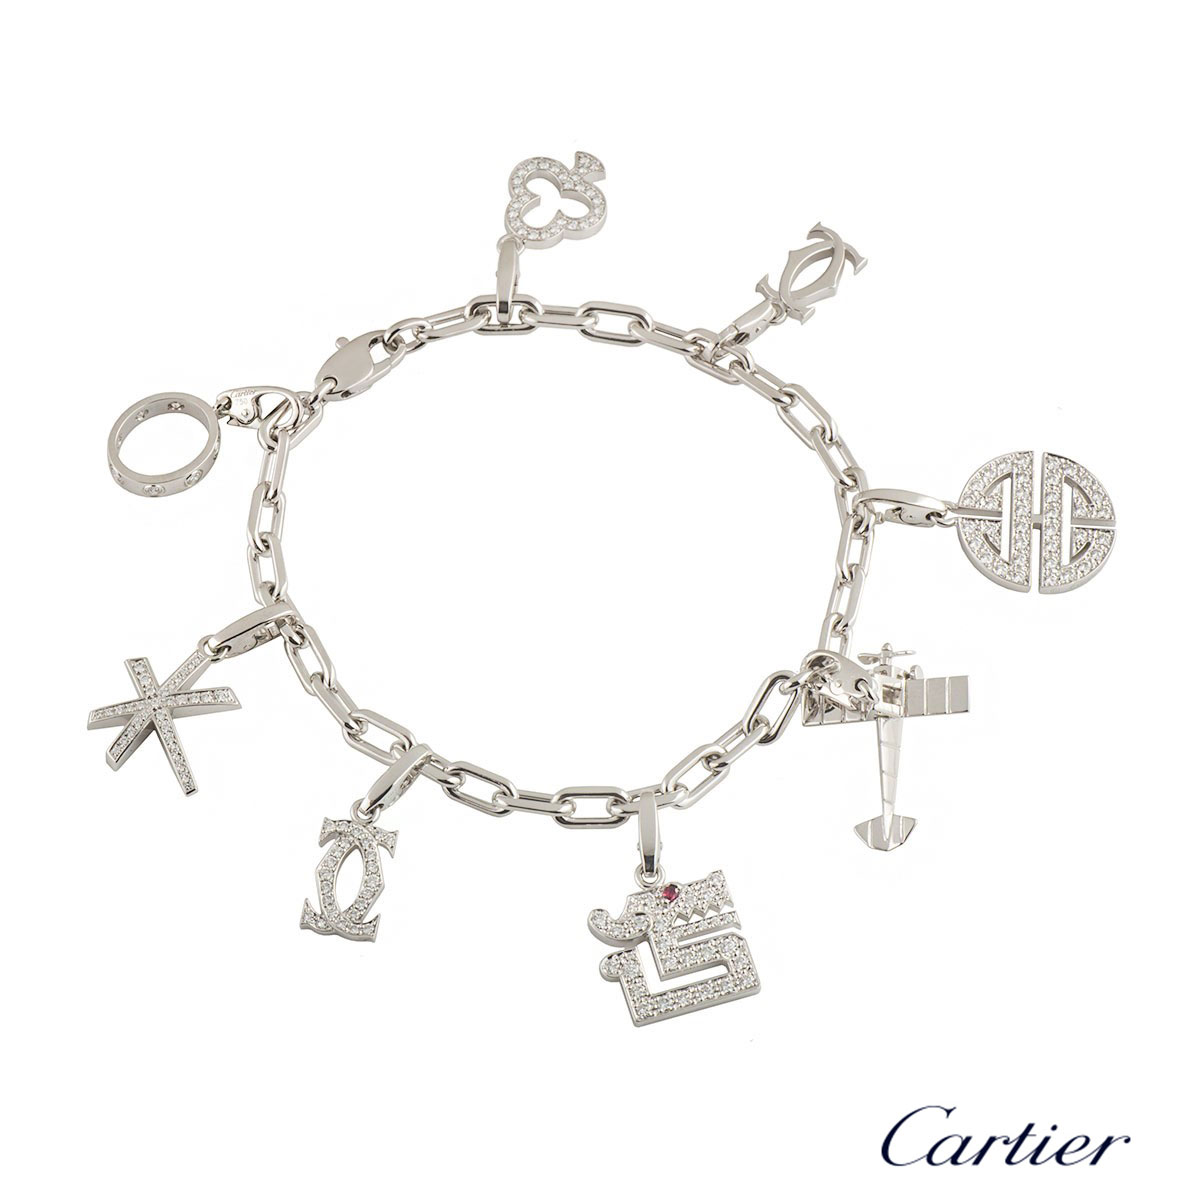 Cartier White Gold and Diamond Charm Bracelet